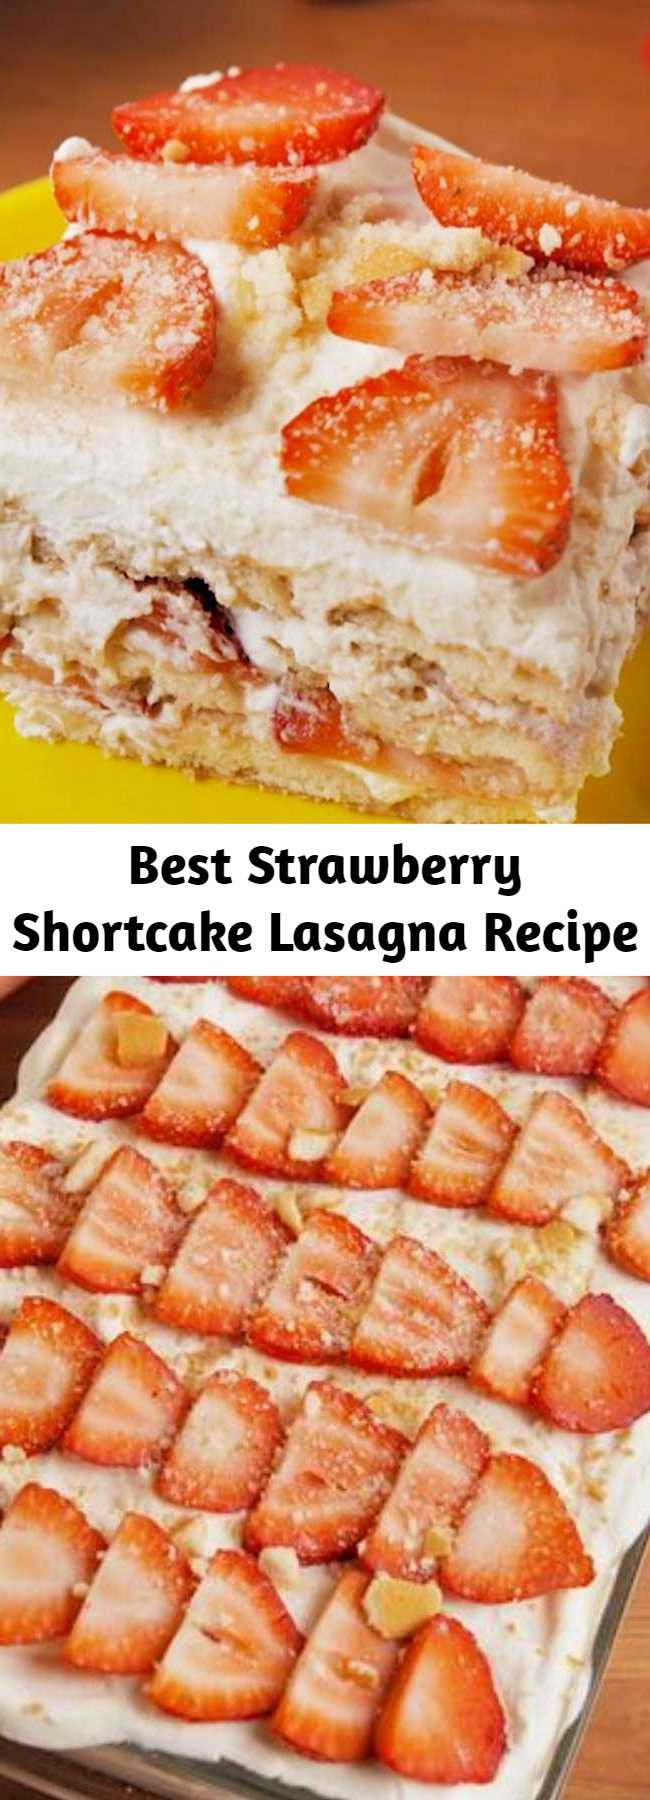 Best Strawberry Shortcake Lasagna Recipe - Easy to make, hard to resist. This no-bake Strawberry Shortcake Lasagna is all you need for your springtime party. #easy #recipe #nobake #dessert #dessertrecipe #strawberryshortcake #dessertlasagna #lasagna #nillawafers #coolwhip